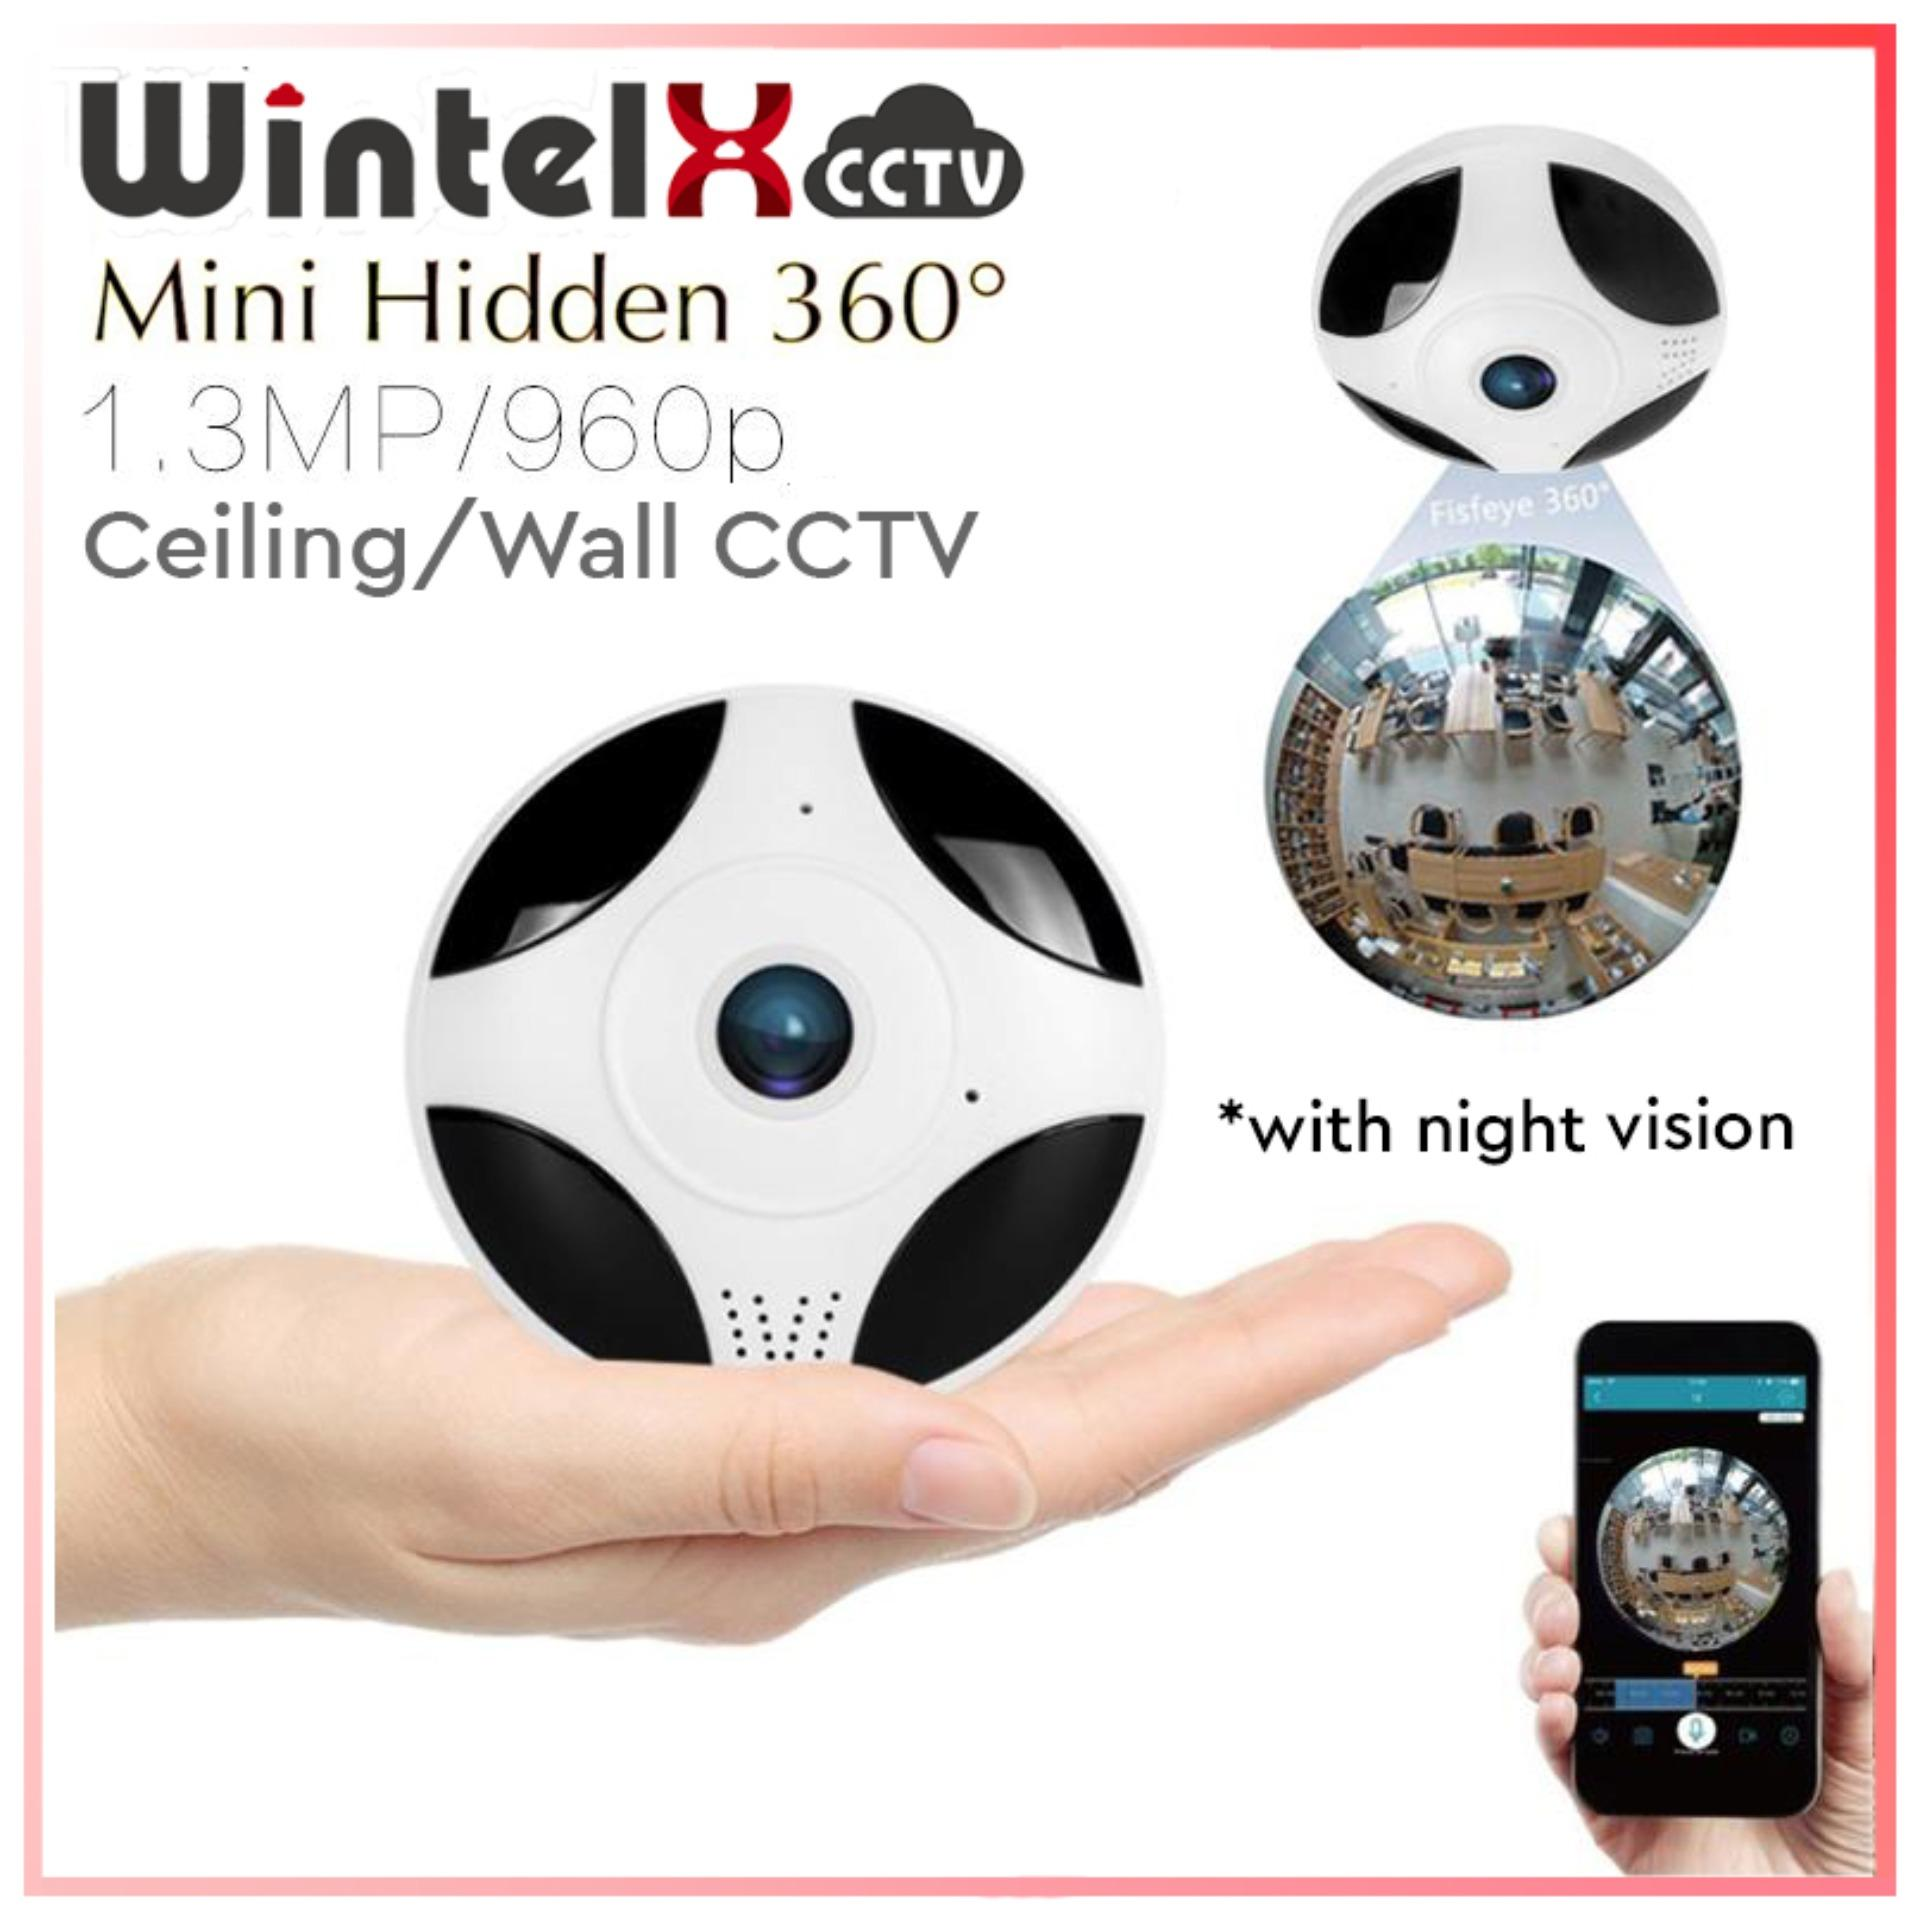 ICSEE cheapest IP CCTV camera smart home security phone PTZ IP baby